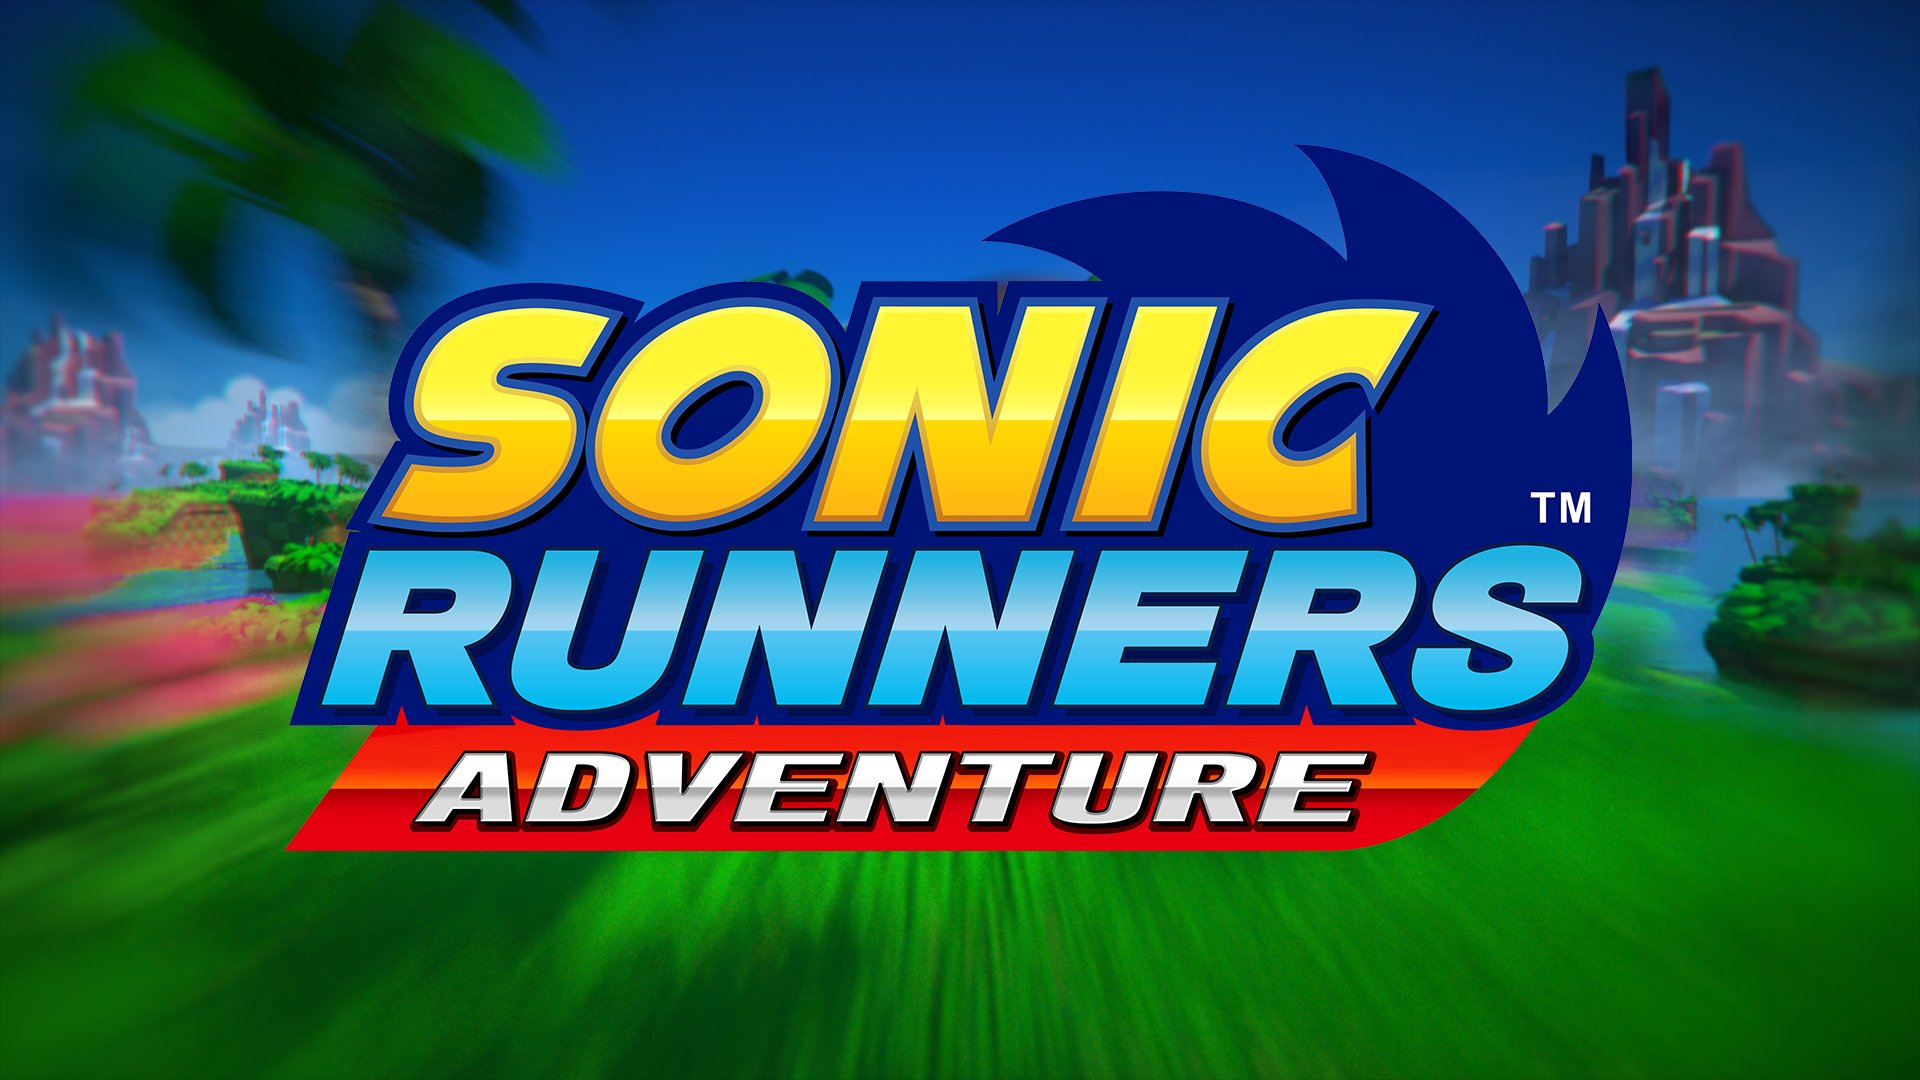 Sonic Runners Adventure is coming soon to iOS and Google Play!  Sign-up for more info at: https://t.co/BgeNa14Eib https://t.co/HhQf1PD2Ow